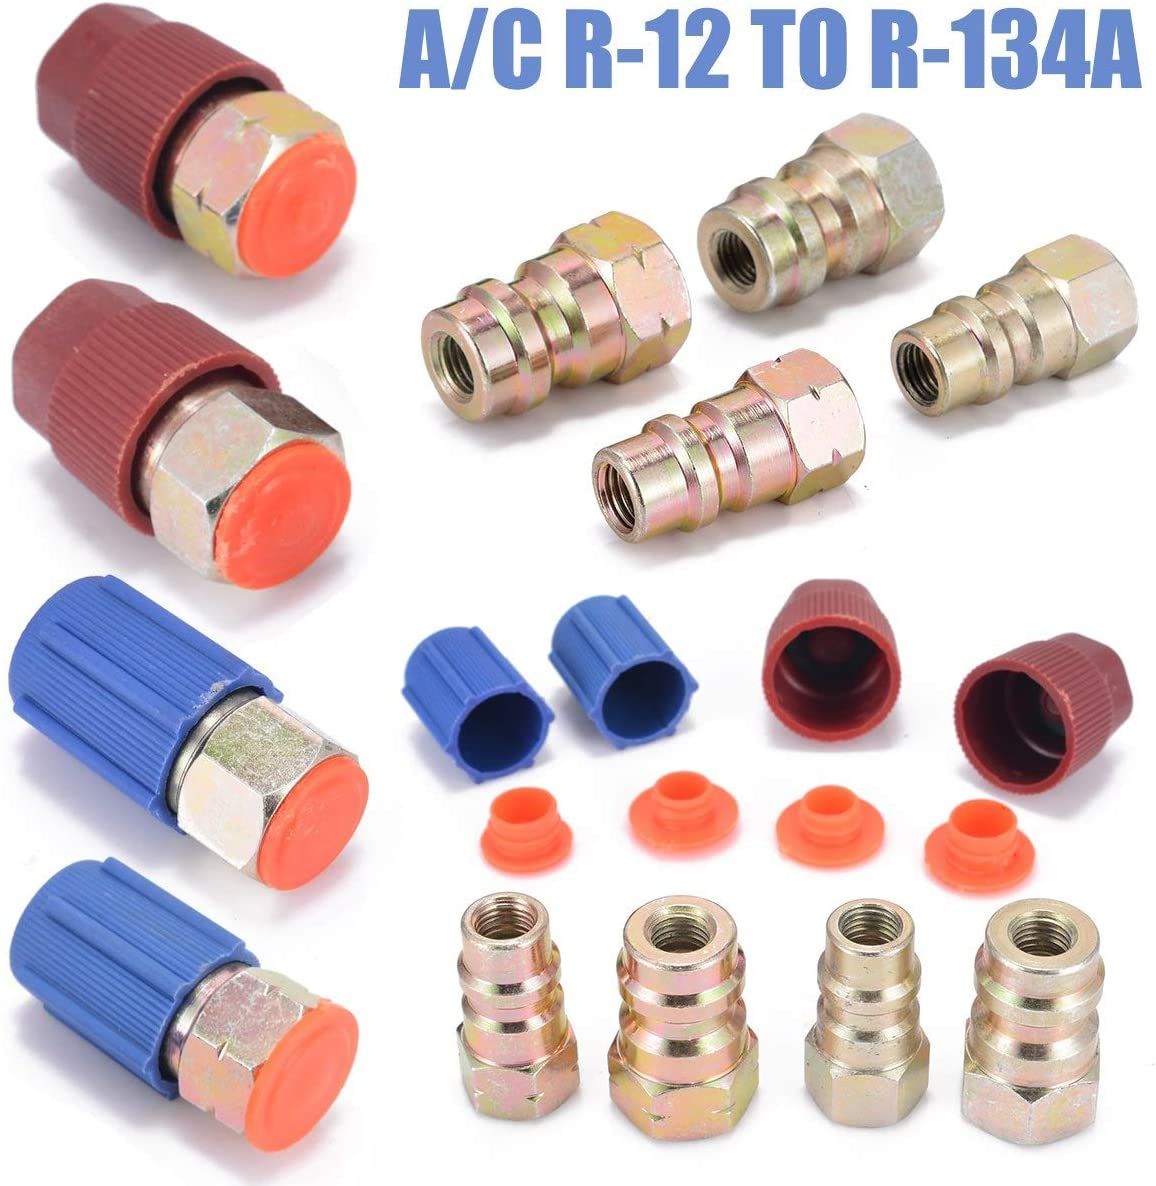 Kunle 1 Set A/C R-12 to R-134a Retrofit Conversion Adapter Fitting 7/16 3/8 SAE Air Conditioning Valves Core Tool Kit + A/C System Cap NEW PRODUCT